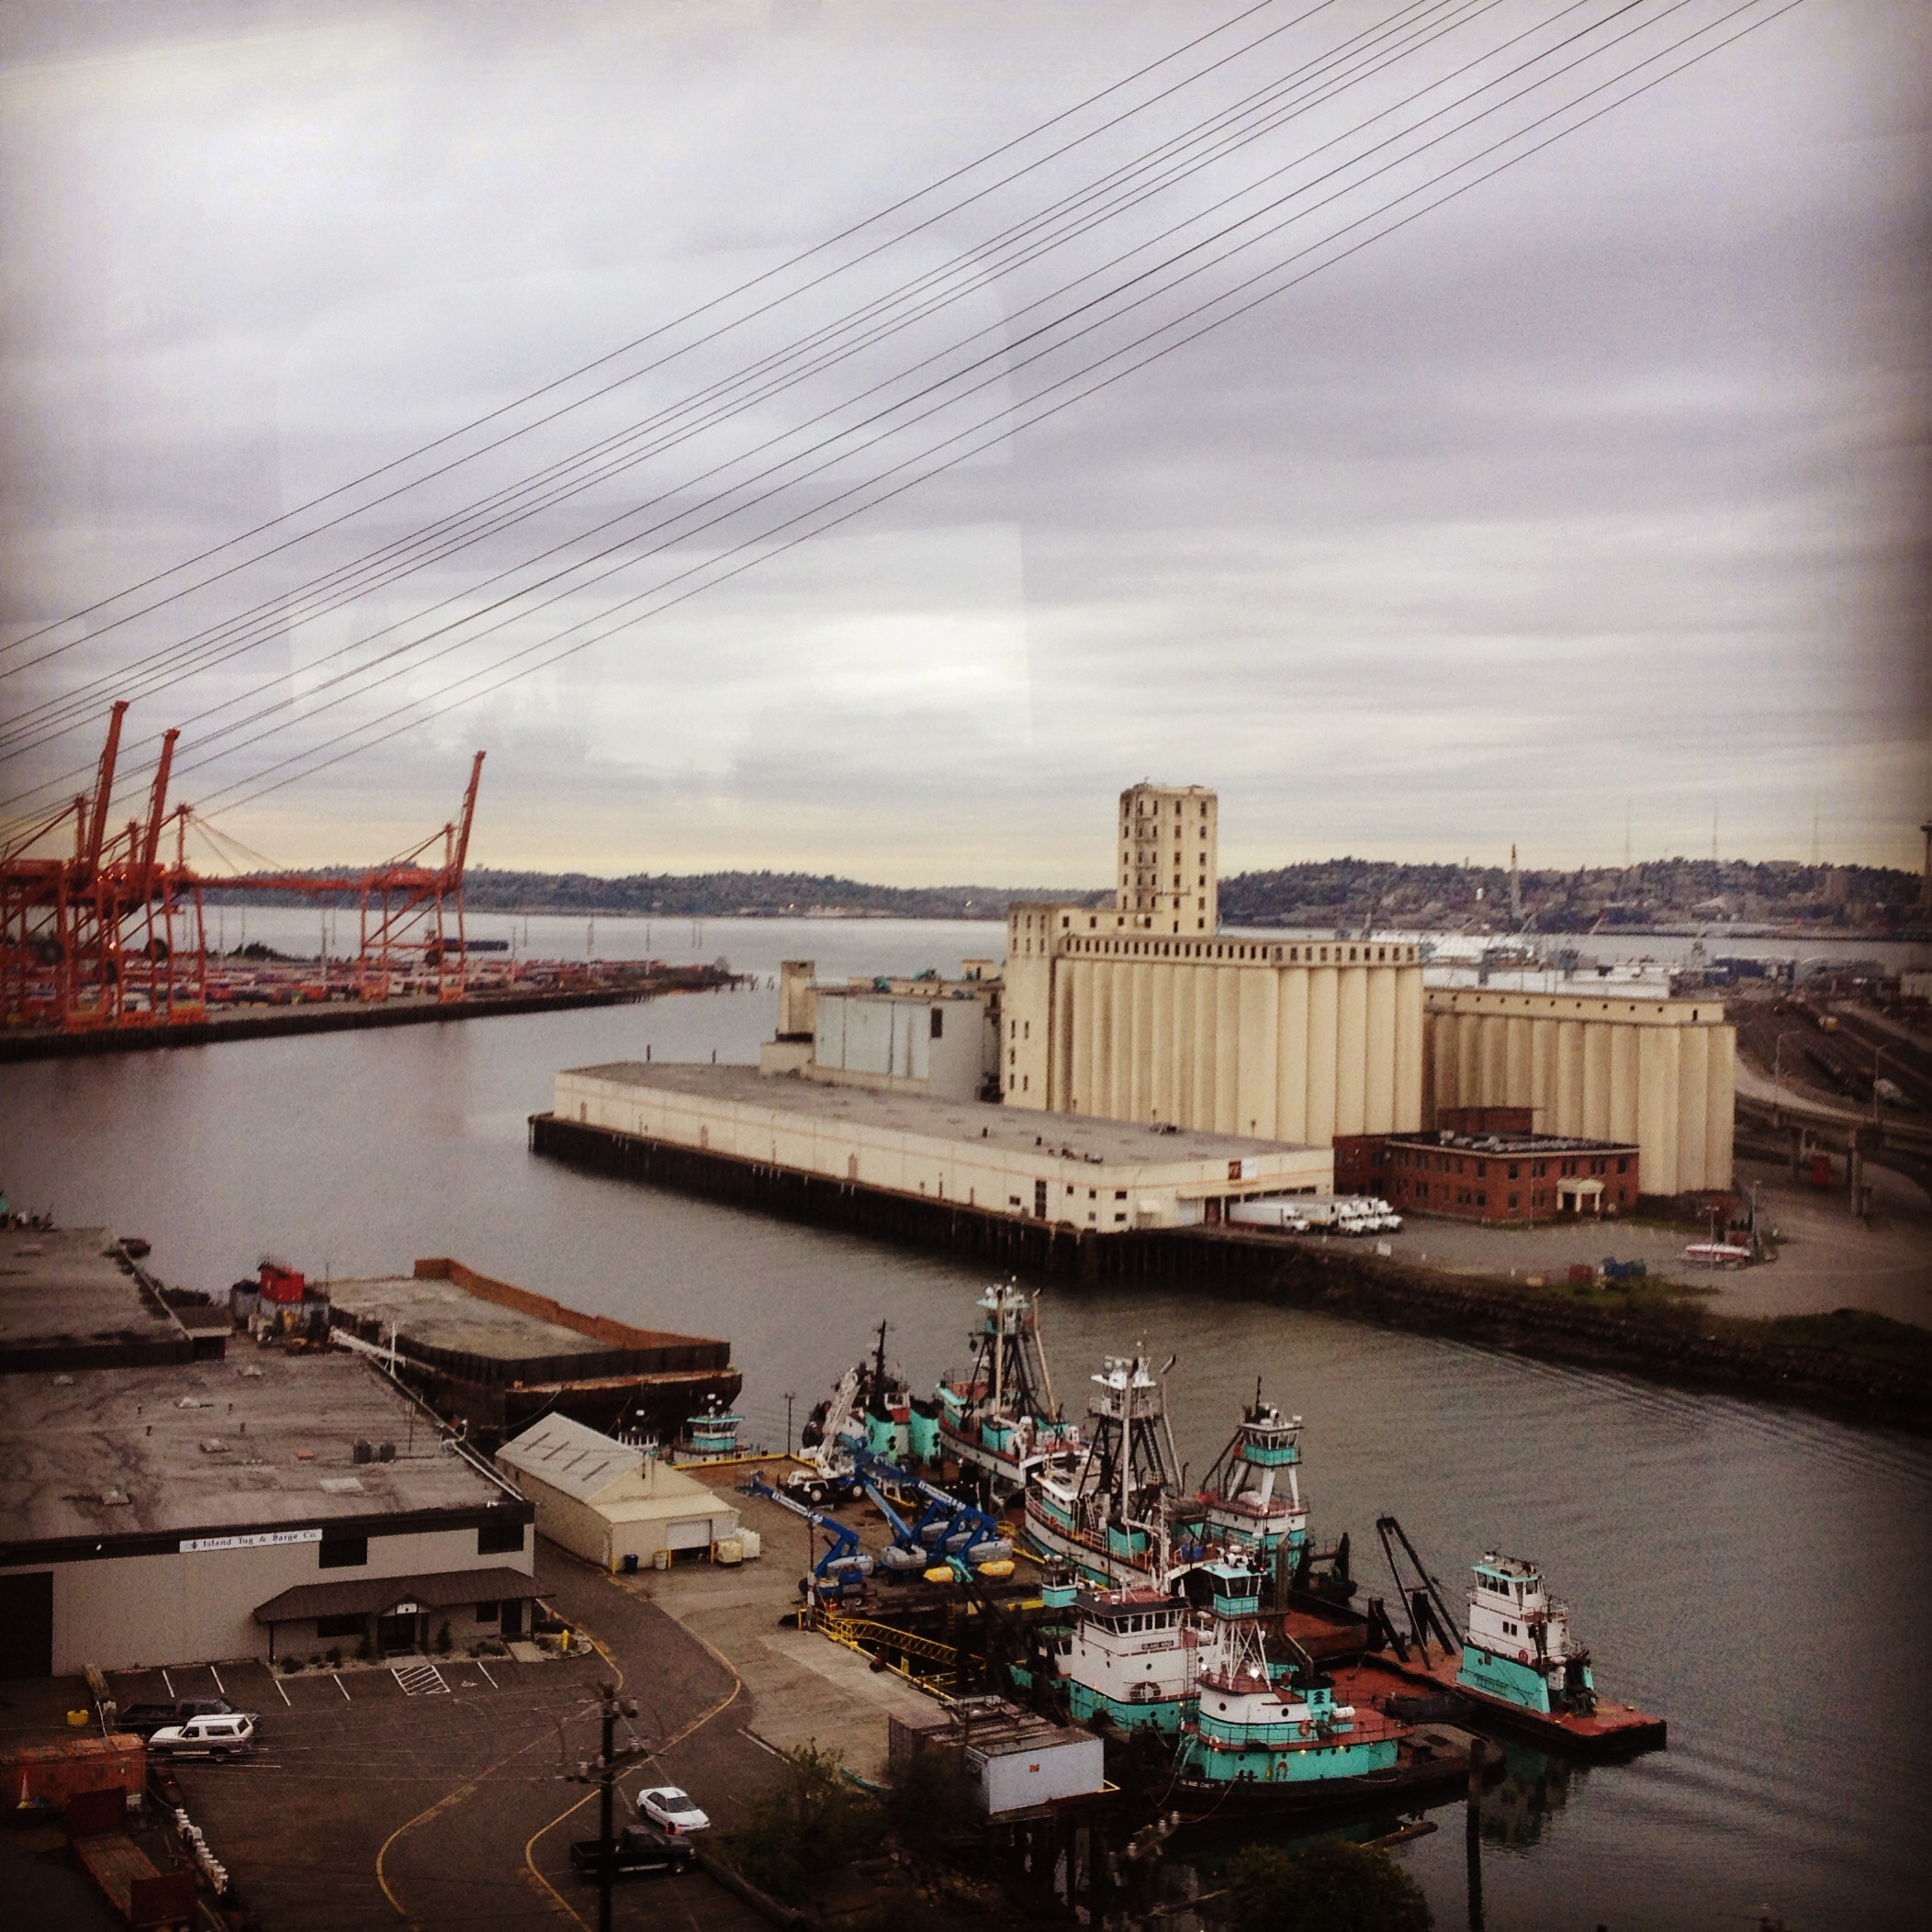 Harbor Island and the mouth of the Duwamish River, Seattle